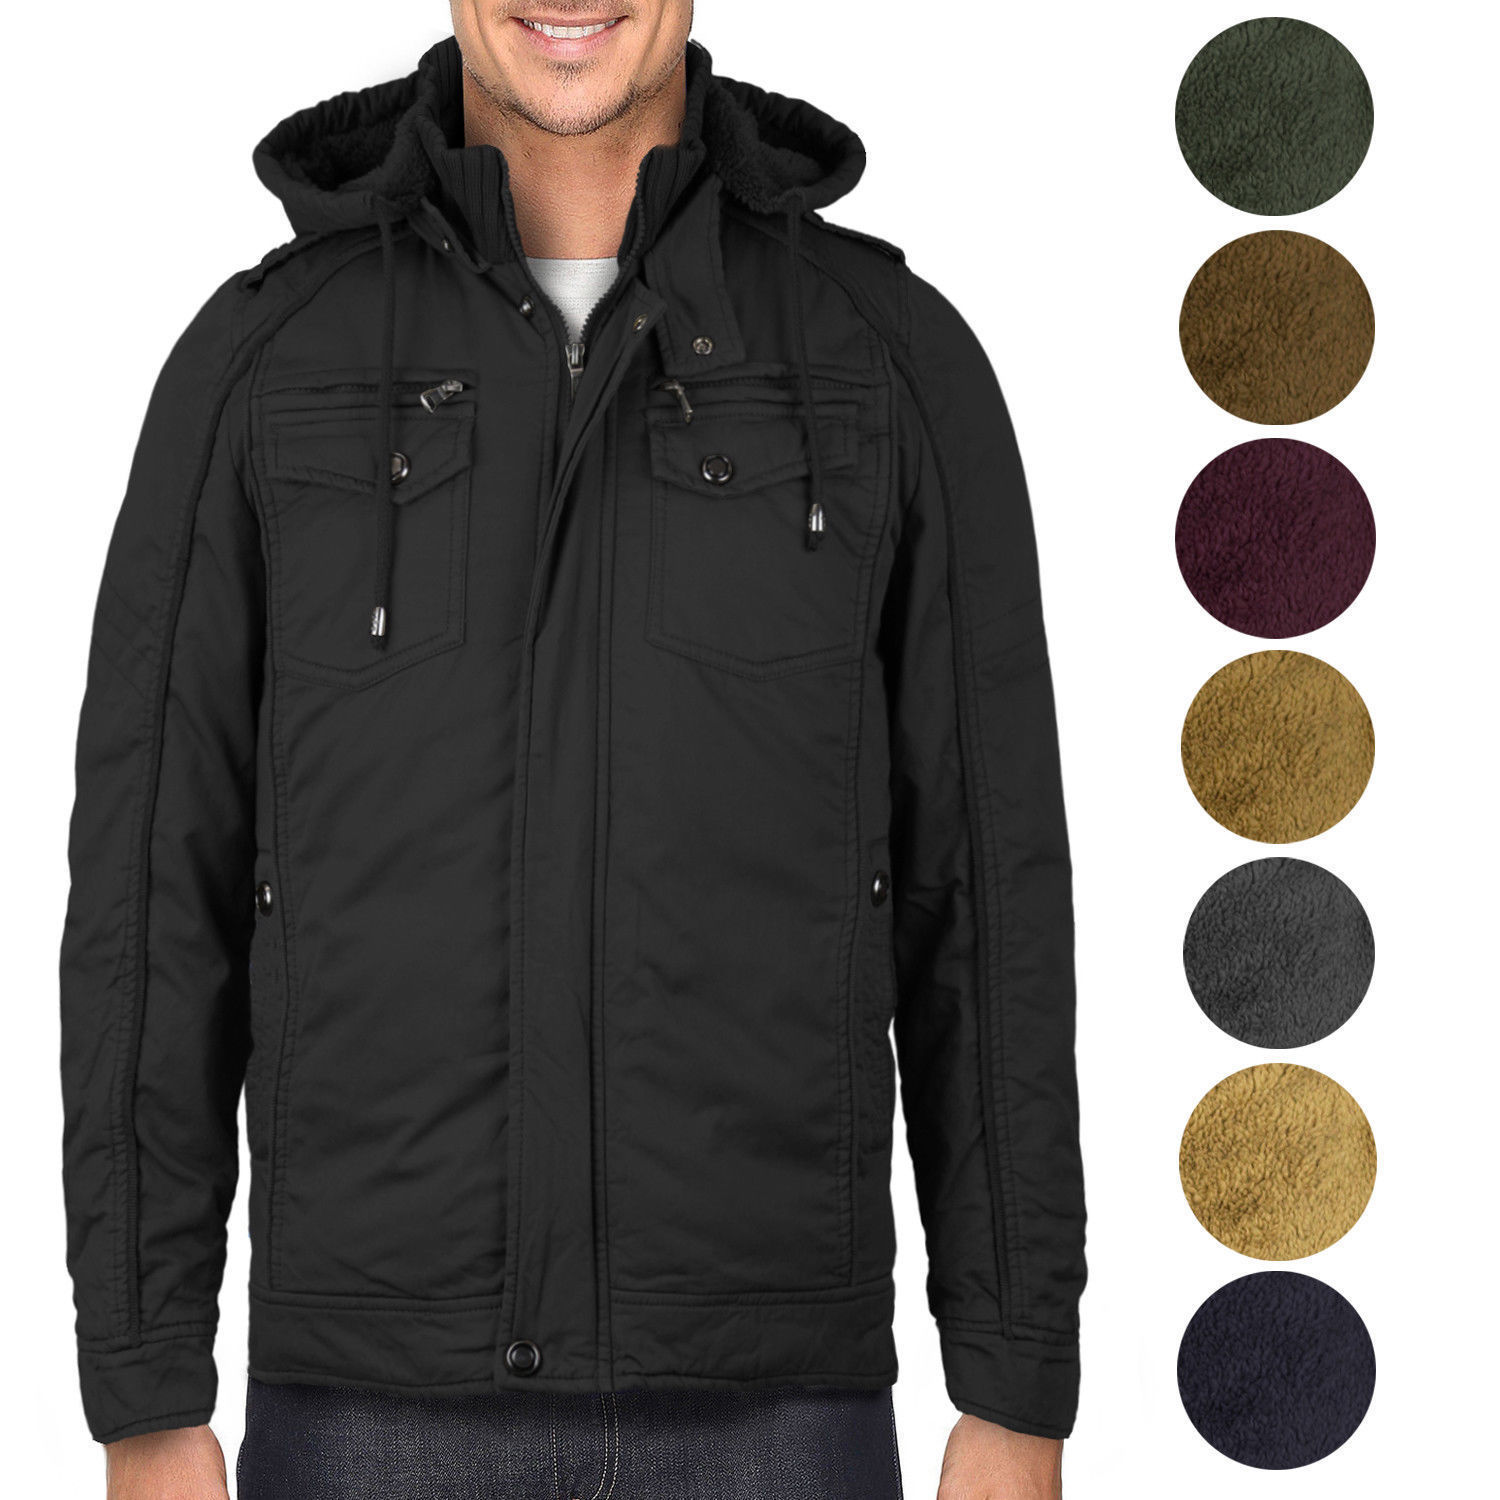 Maximos Men's Premium Hooded Multi Pocket Sherpa Lined Bomber Jacket Sahara-01